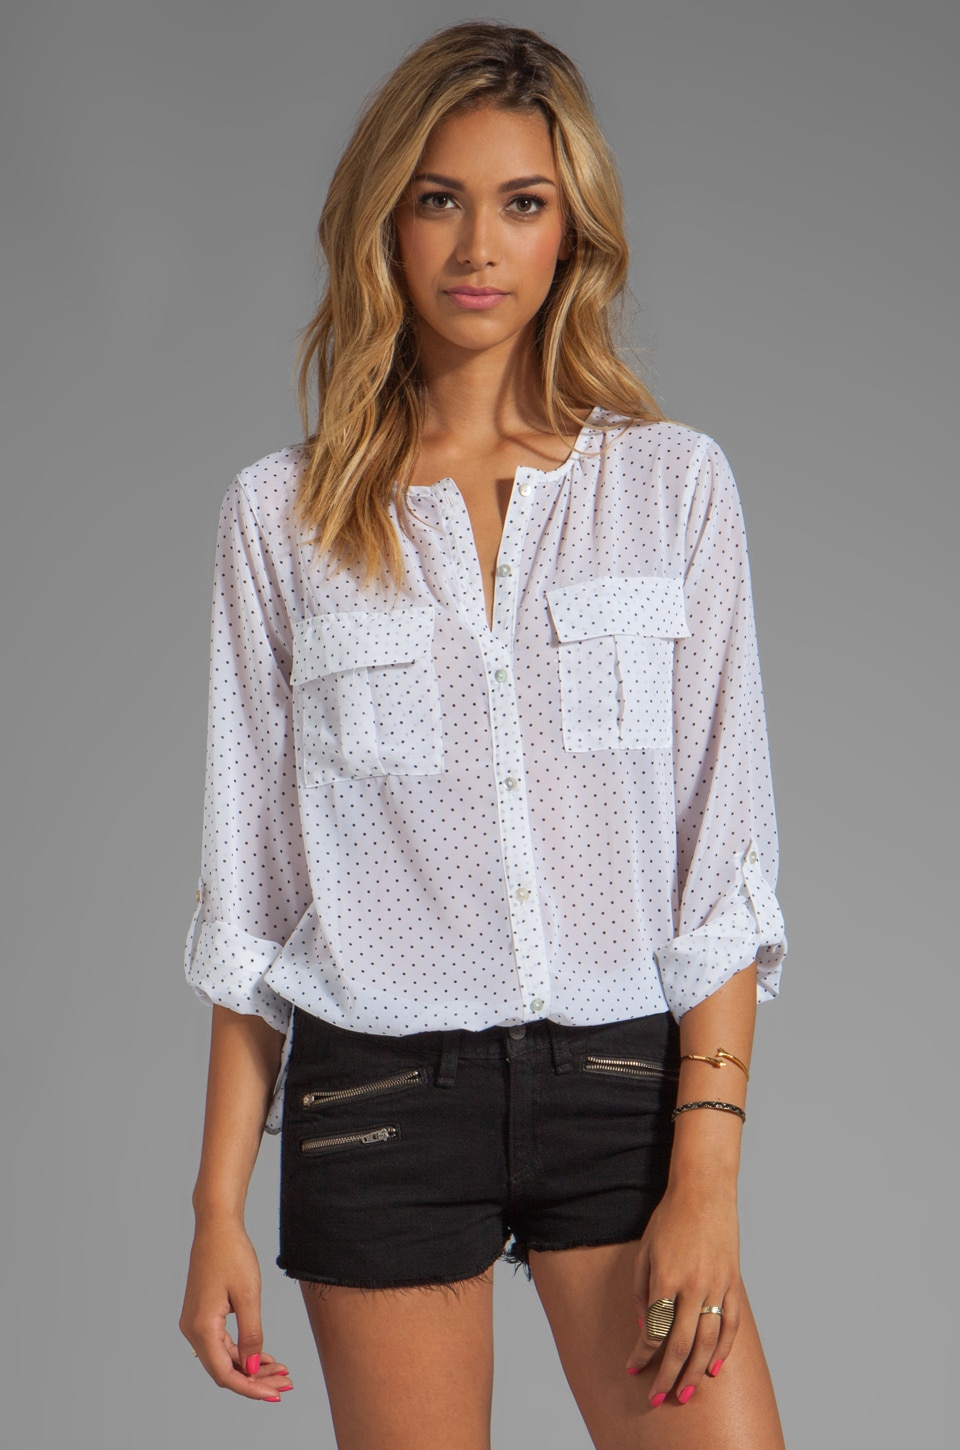 Sanctuary Black and White Cannes Sidewalk Cafe Top in White